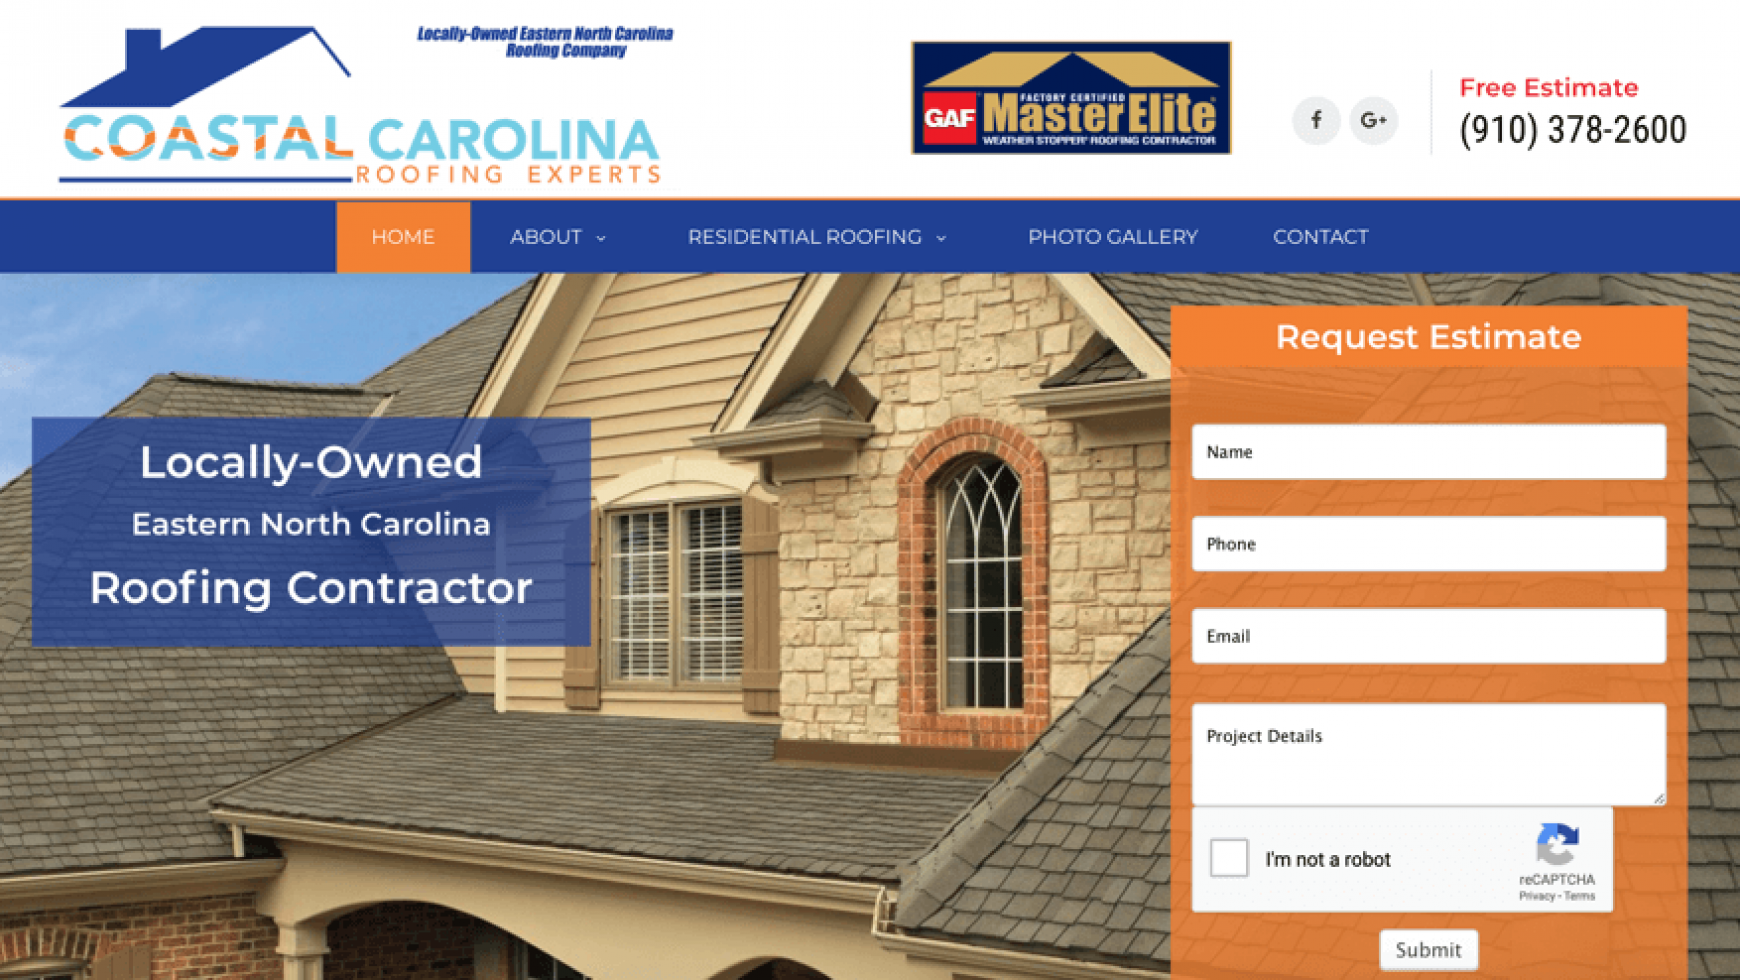 Coastal Carolina Roofing Experts Website